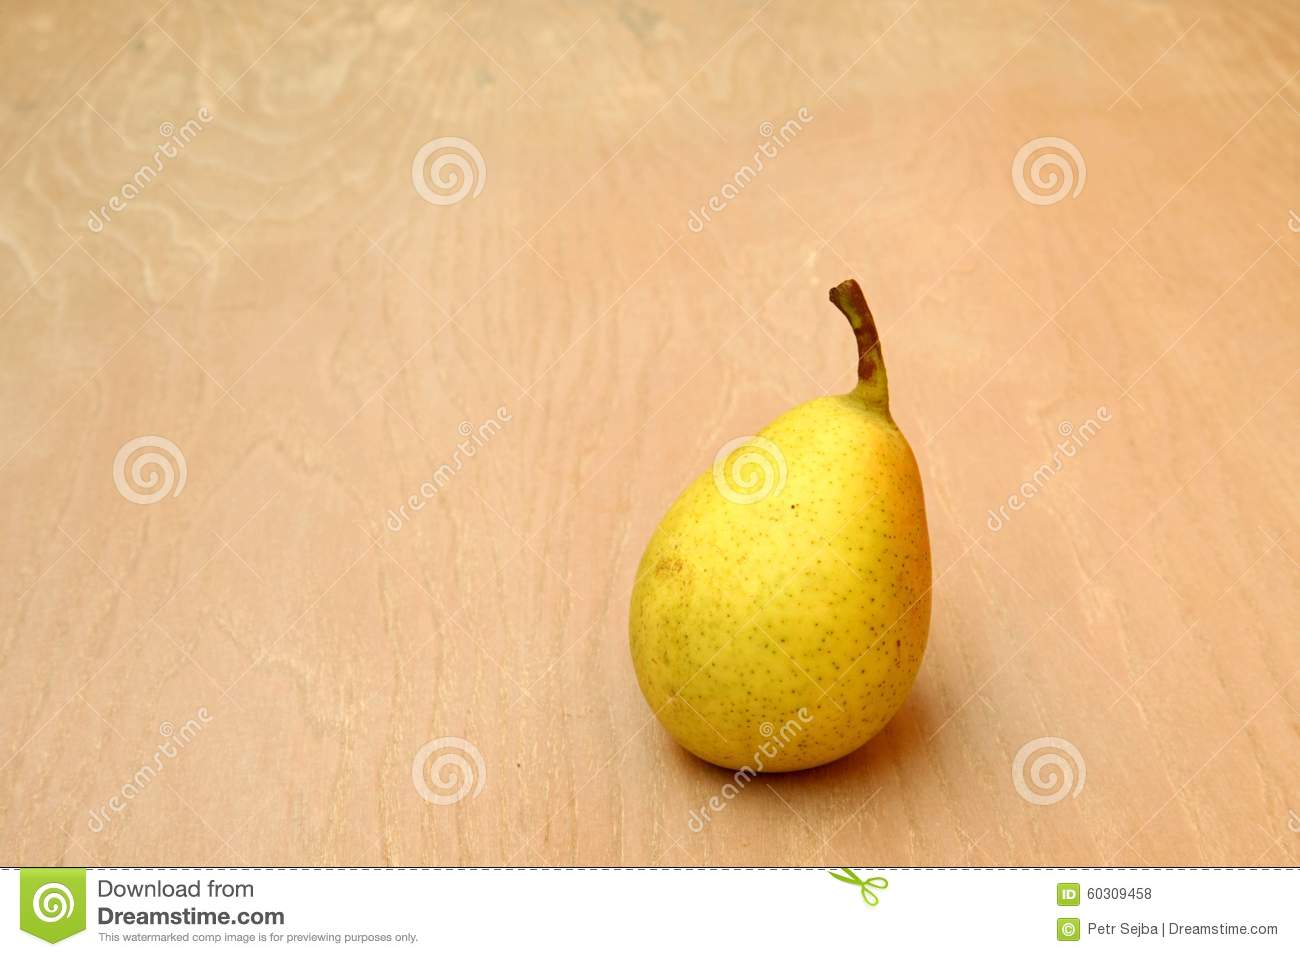 Download Pear stock photo. Image of pear, tasty, wooden, gourmet - 60309458